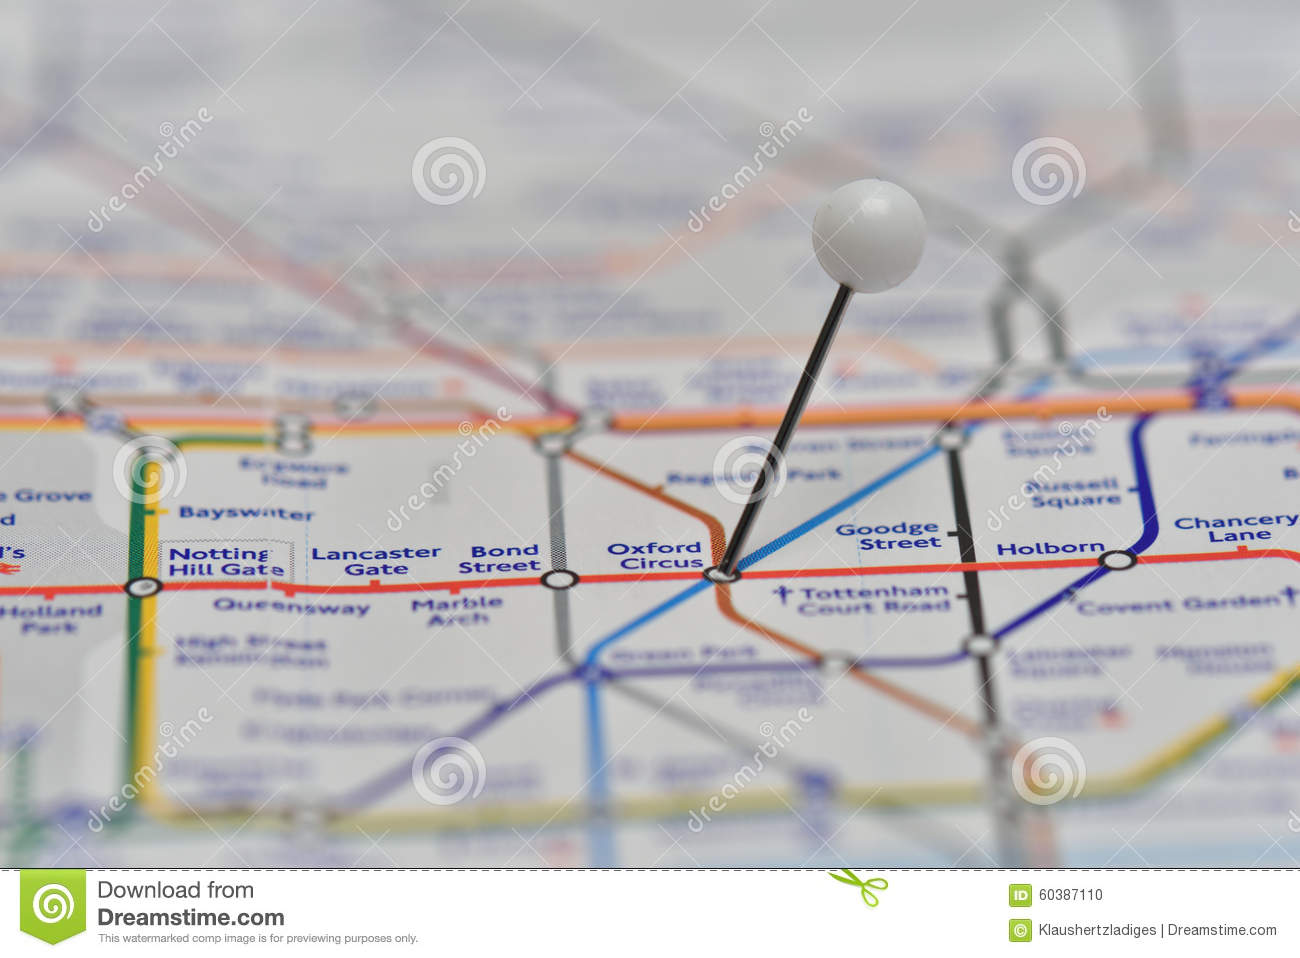 London Underground Map With Pin In Oxford Circus Station Stock Photo